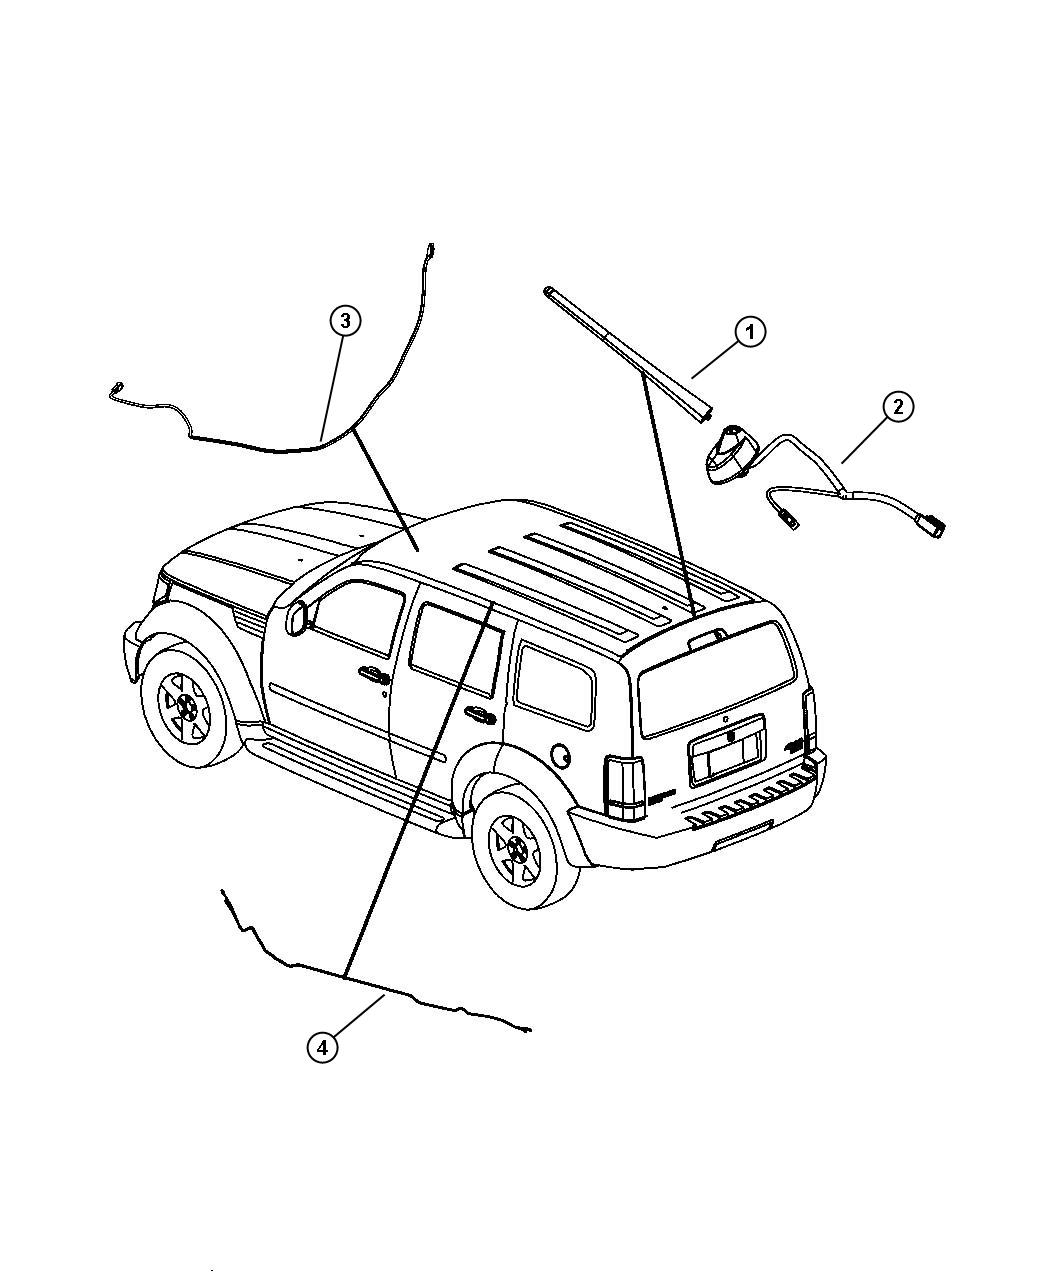 Jeep Liberty Antenna Used For Base Cable And Bracket